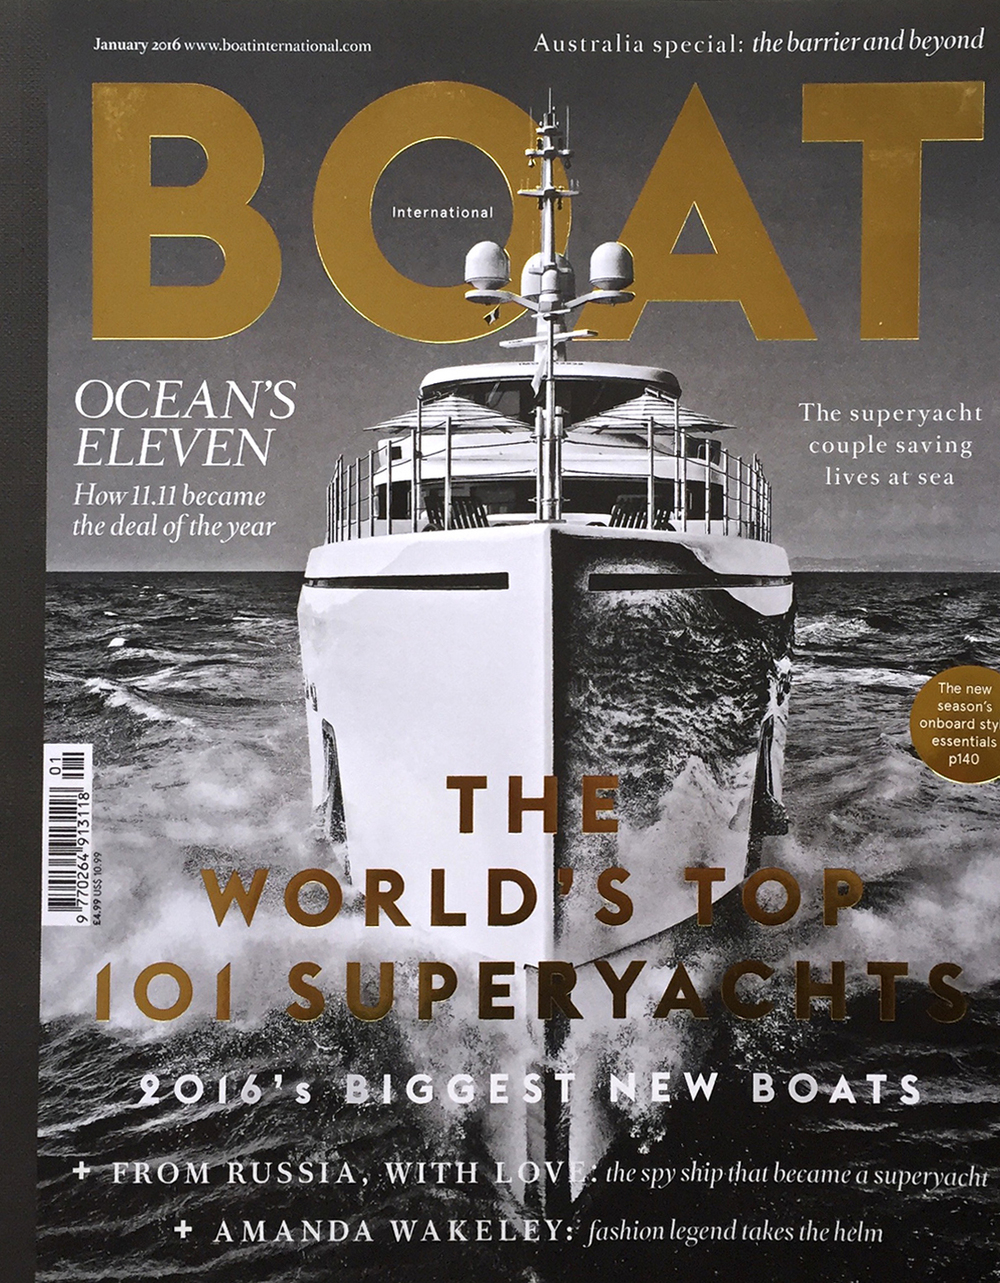 Boat Jan Cover2016.jpg